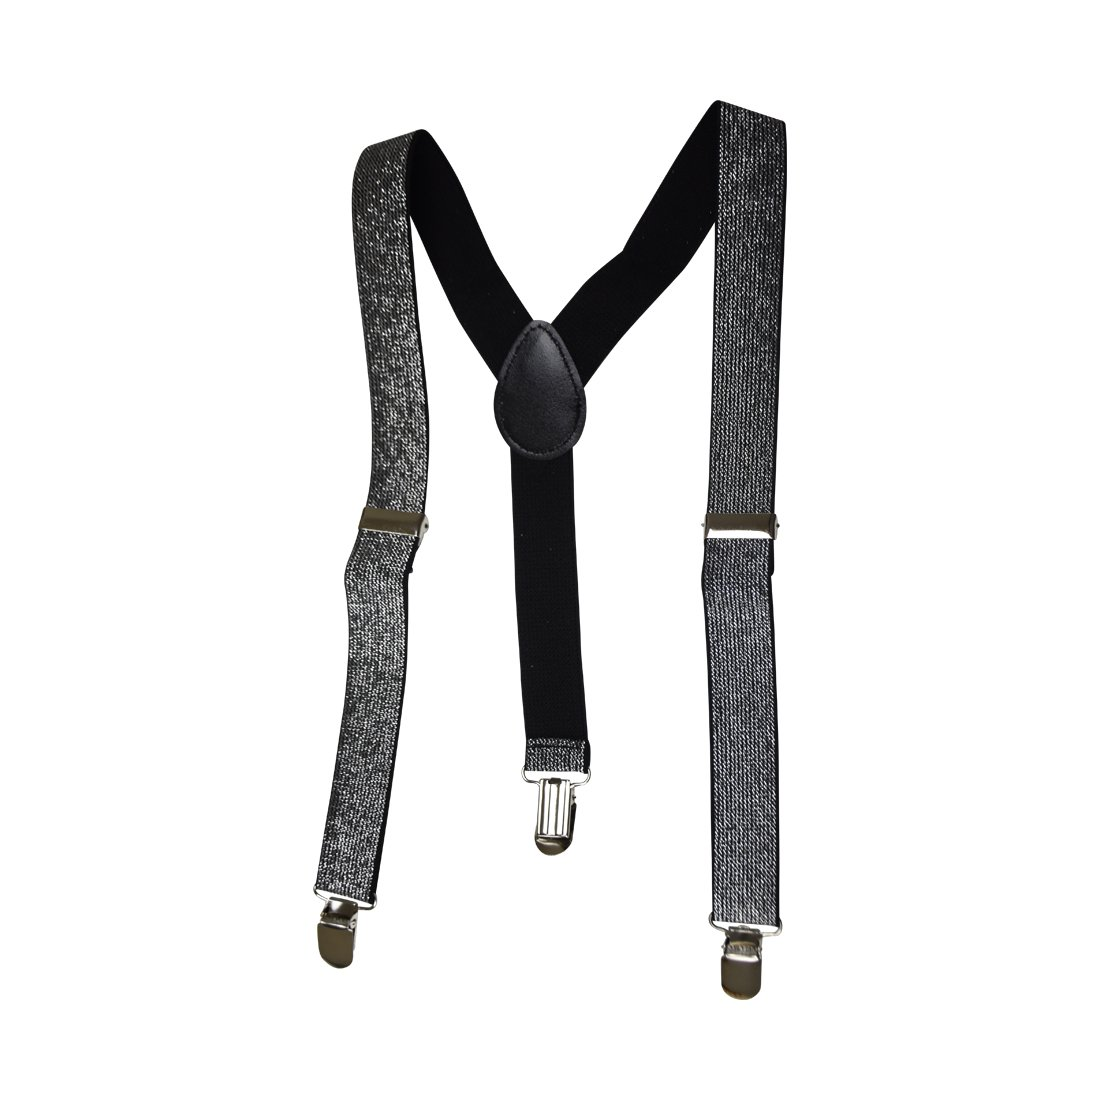 Suspenders for Boys Adjustable Elastic Black with Silver Glitter